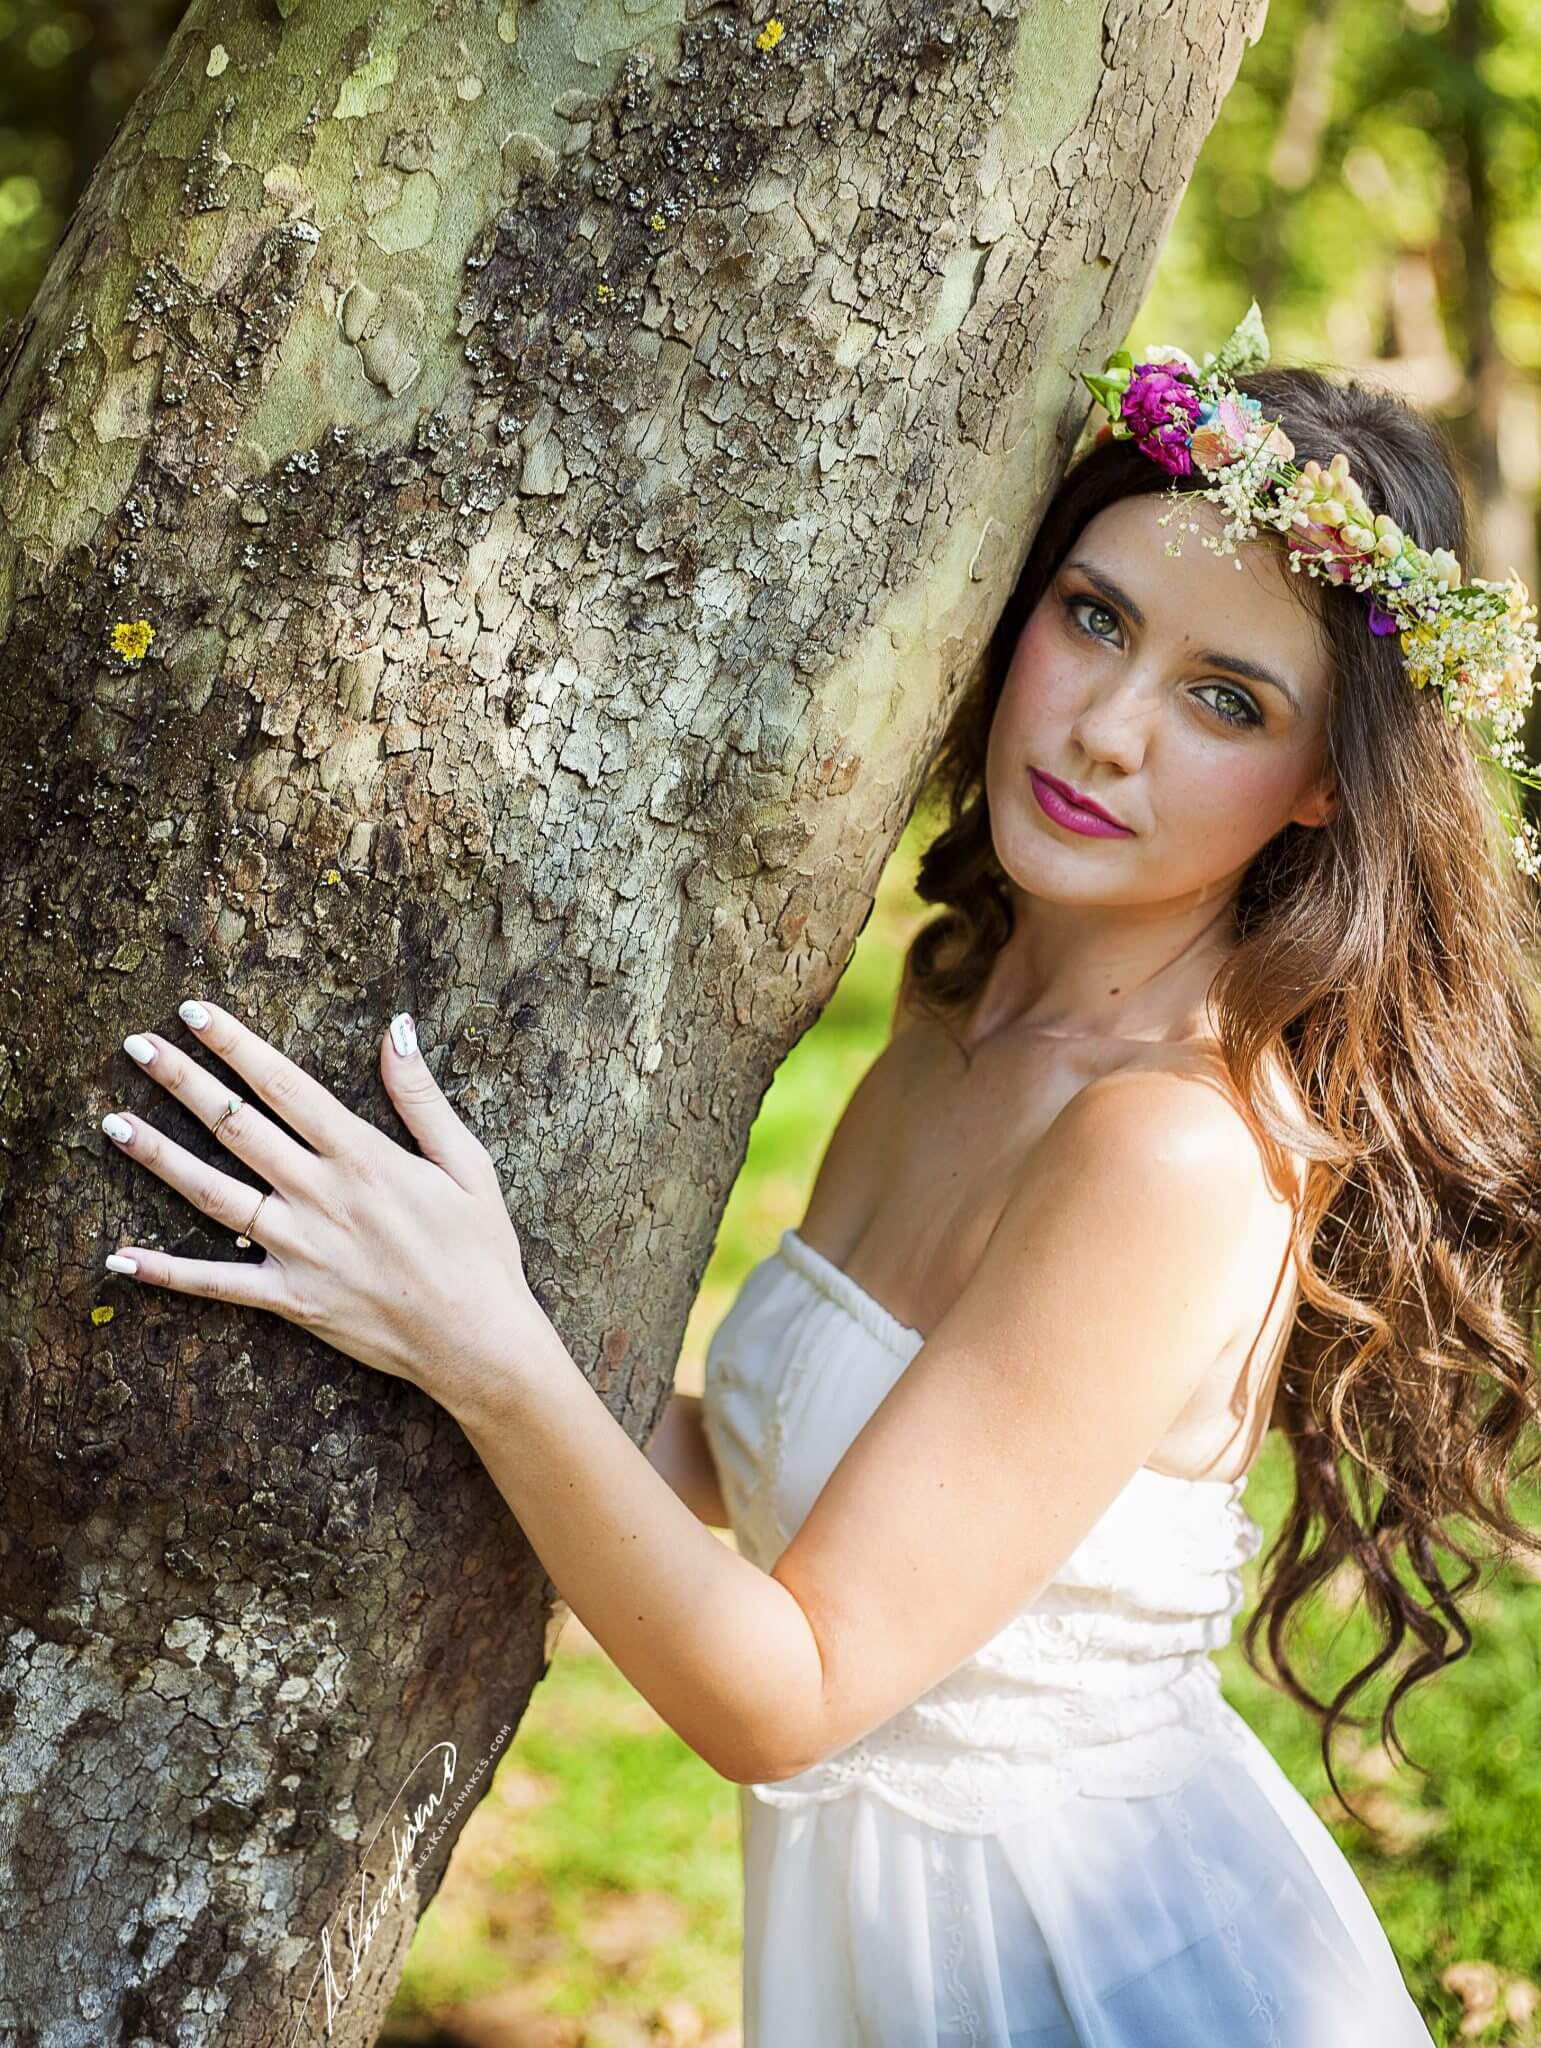 Wedding Bridal Photo Shoot in Serres, Greece by the Dreammakers. Wedding Photography and Videography.